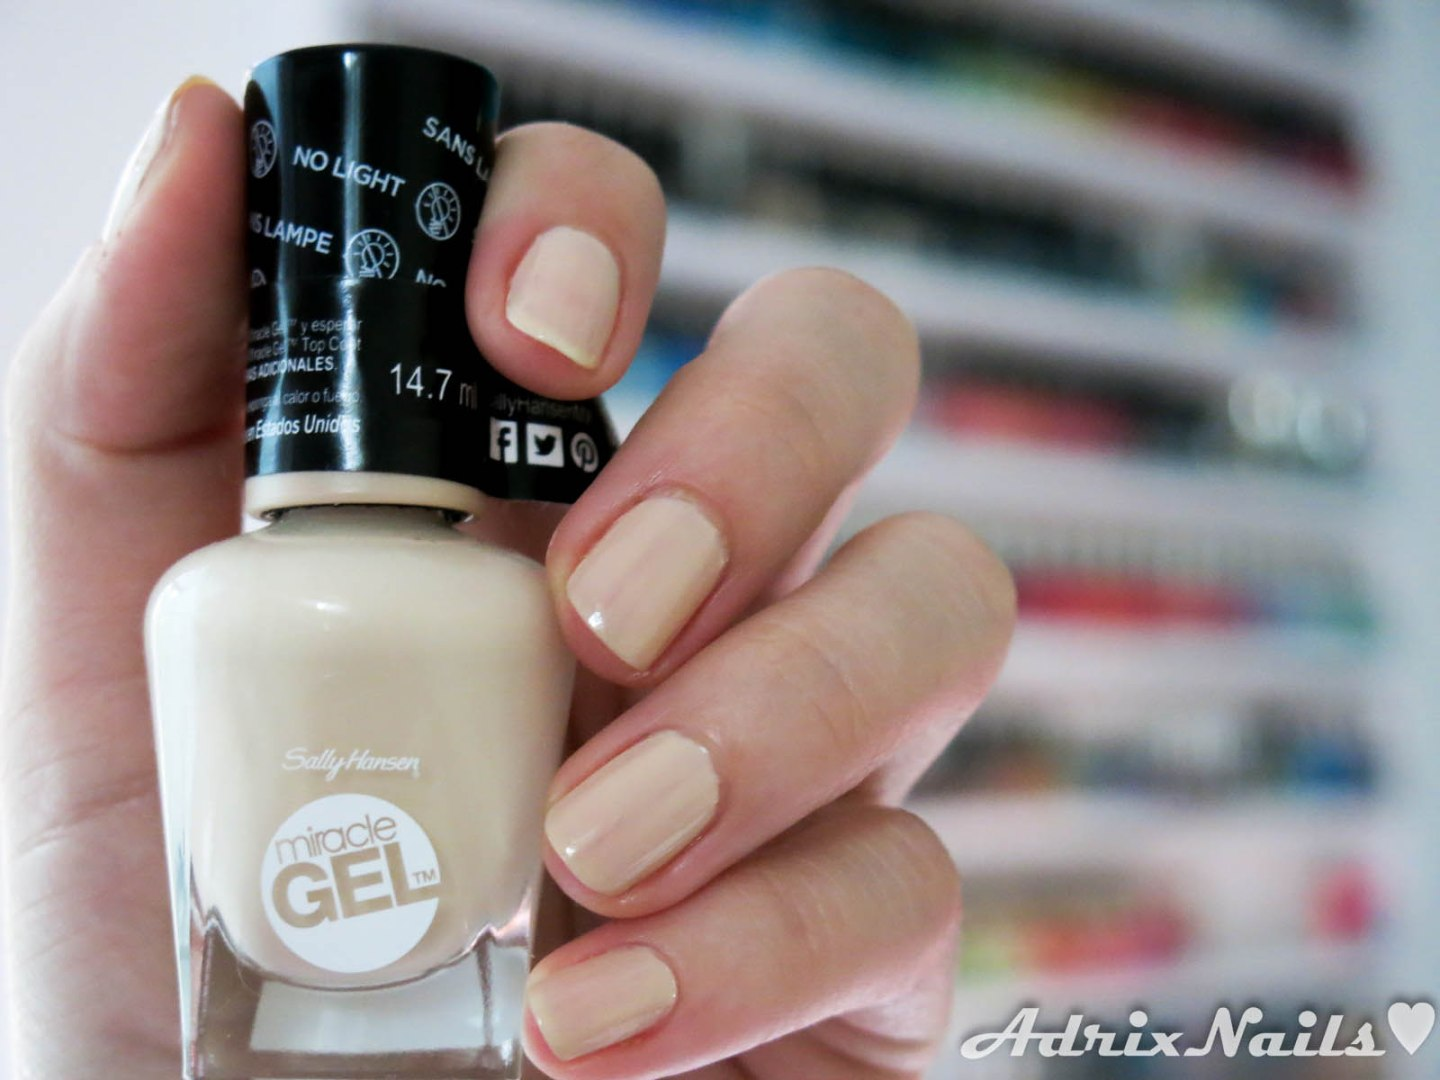 sally hansen, miracle gel, flawless nudes, blogs de uñas mexicanos, blogs de uñas, blogs de méxico, blog de guadalajara, blogger mexicana, adrix nails, reseñas de esmaltes, review de esmaltes, nail polish review, reseñas, shimmer, diy nails, uñas paso a paso, esmaltes, uñas, swatches, nails, nail art, nail polish, colores, review, adrix nails, blog mexicano dedicado al nail art, blogueras mexicanas, mexican bloggers, blogs de méxico, nailpolishlove,